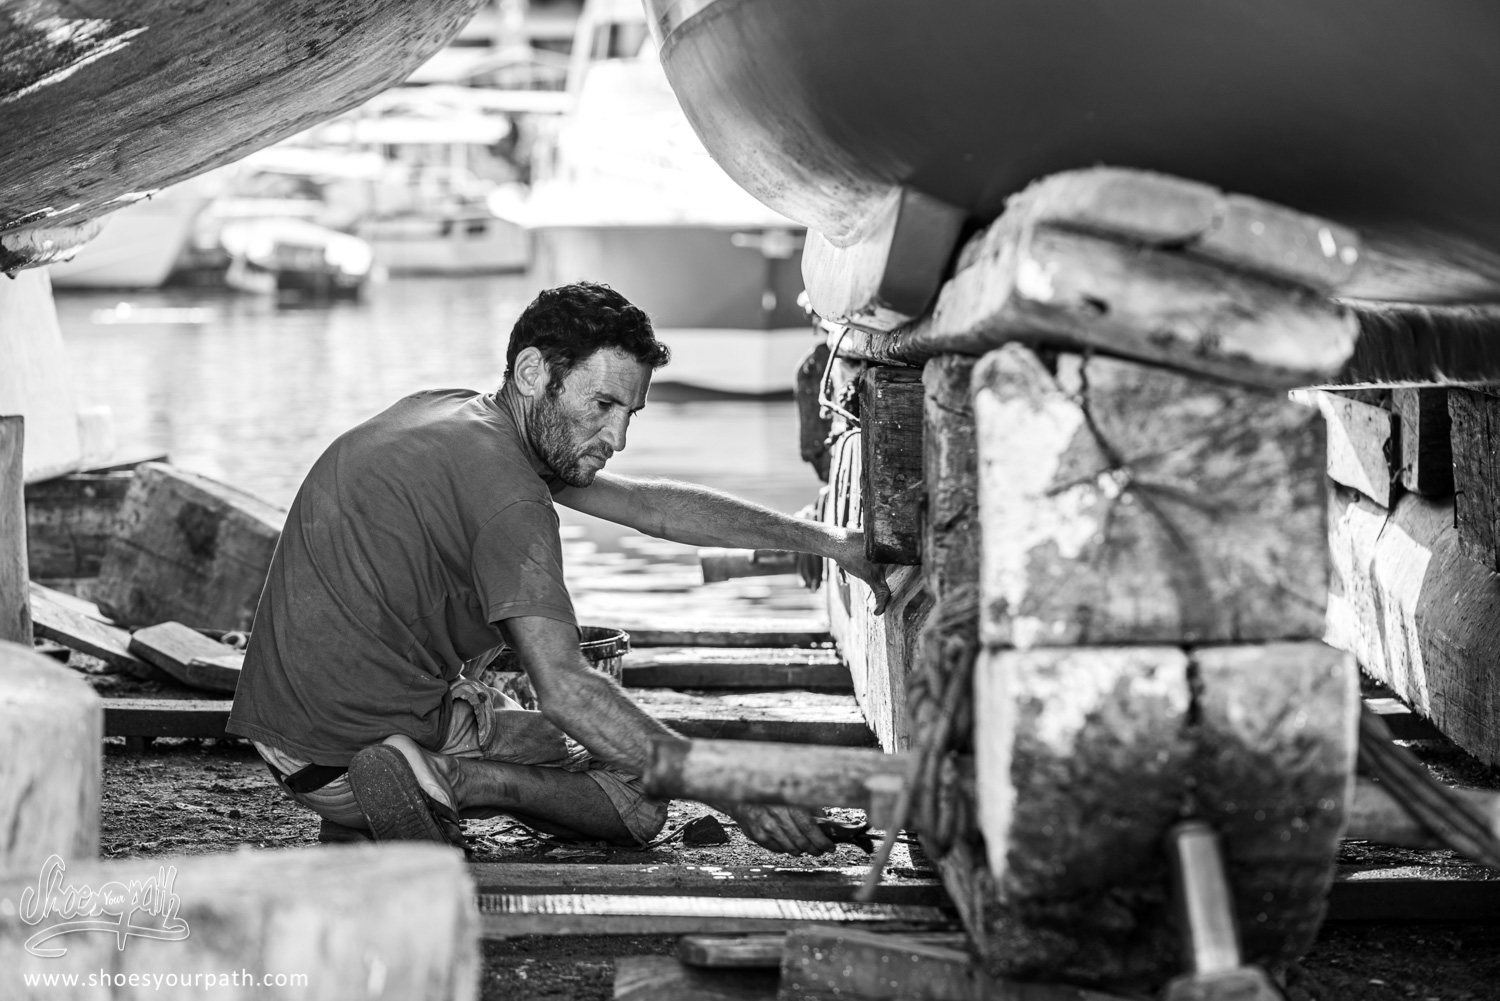 A painter working on a boat in the Kyrenia harbor